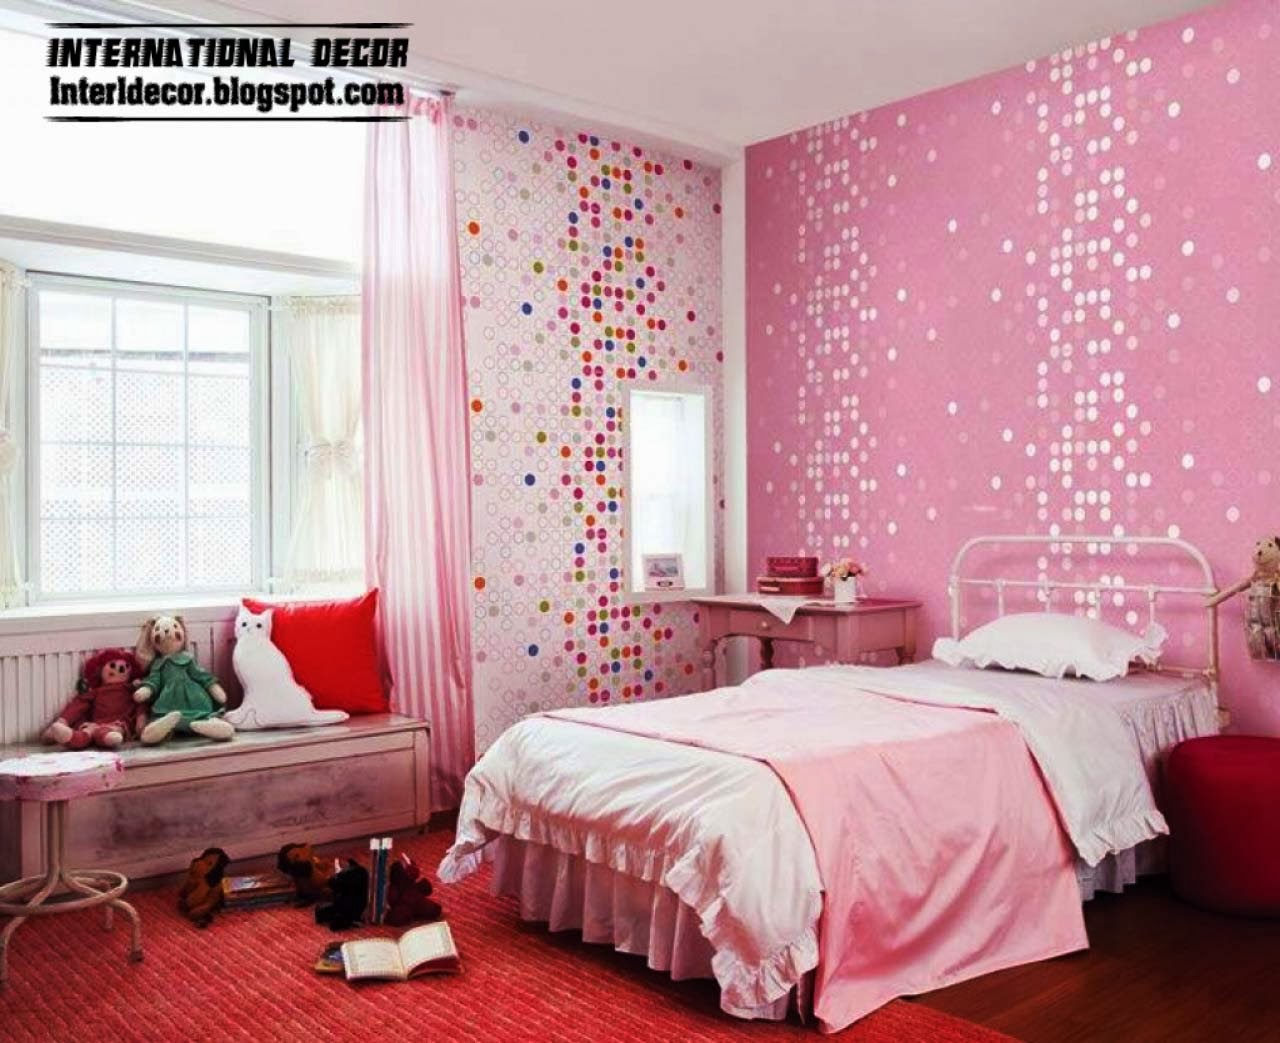 Interior design 2014 15 pink girl 39 s bedroom 2014 for Room design ideas pink